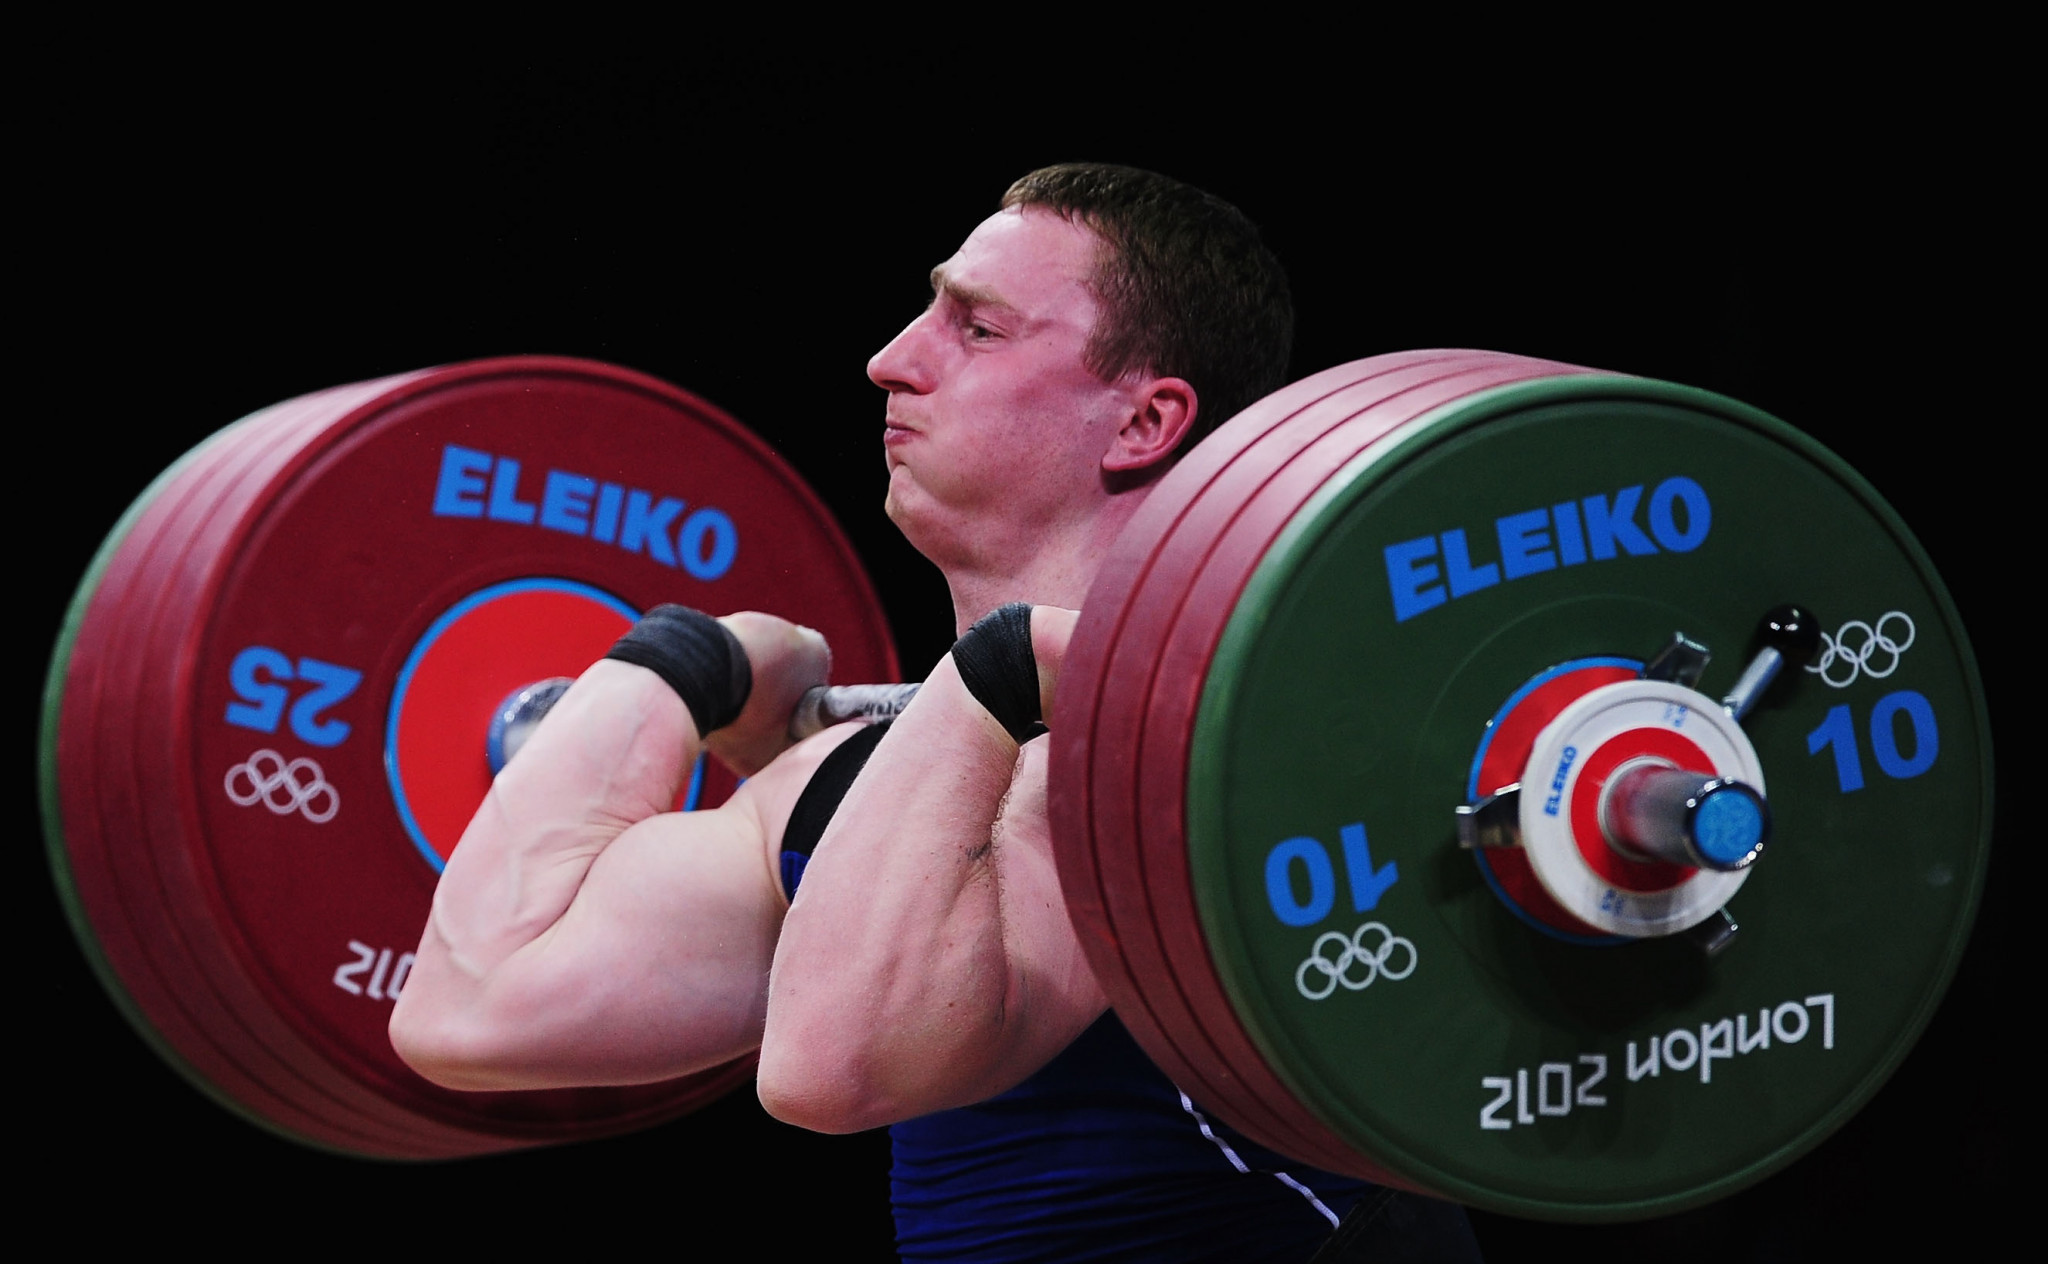 Belarus' Mikalai Novikau initially finished eighth in the men's 85kg category at London 2012 ©Getty Images